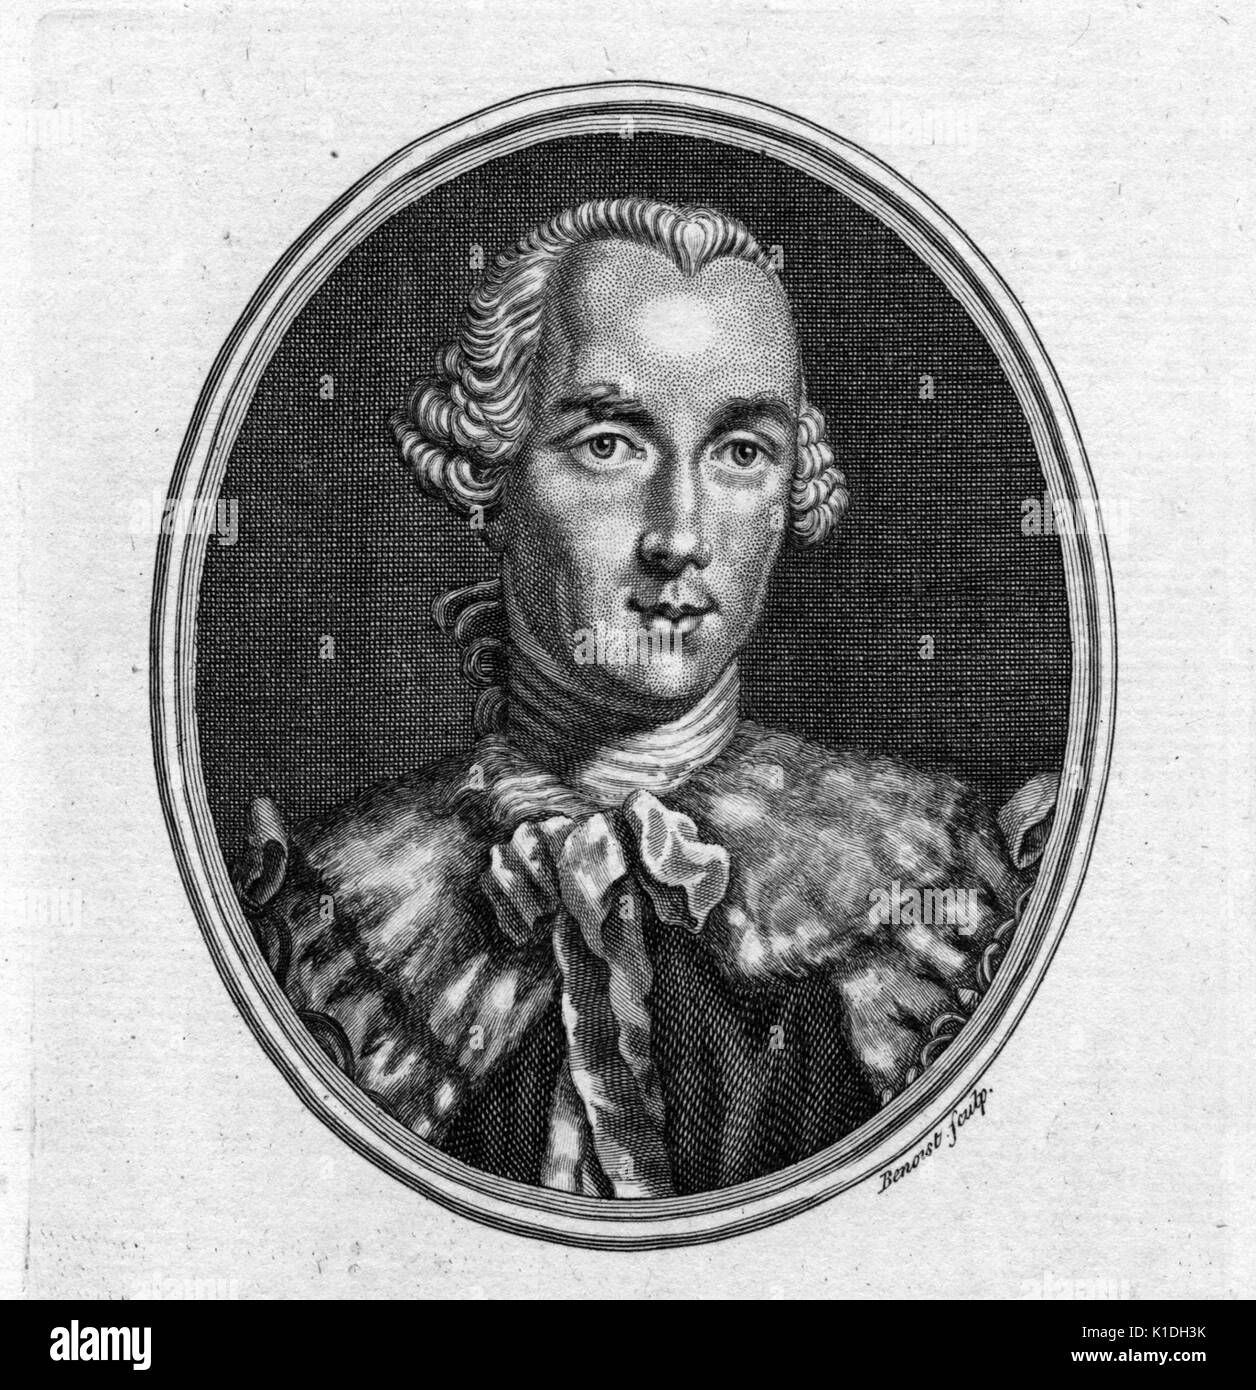 John Stuart, 3rd Earl of Bute, a former Prime Minister of Great Britian, 1750. From the New York Public Library. - Stock Image